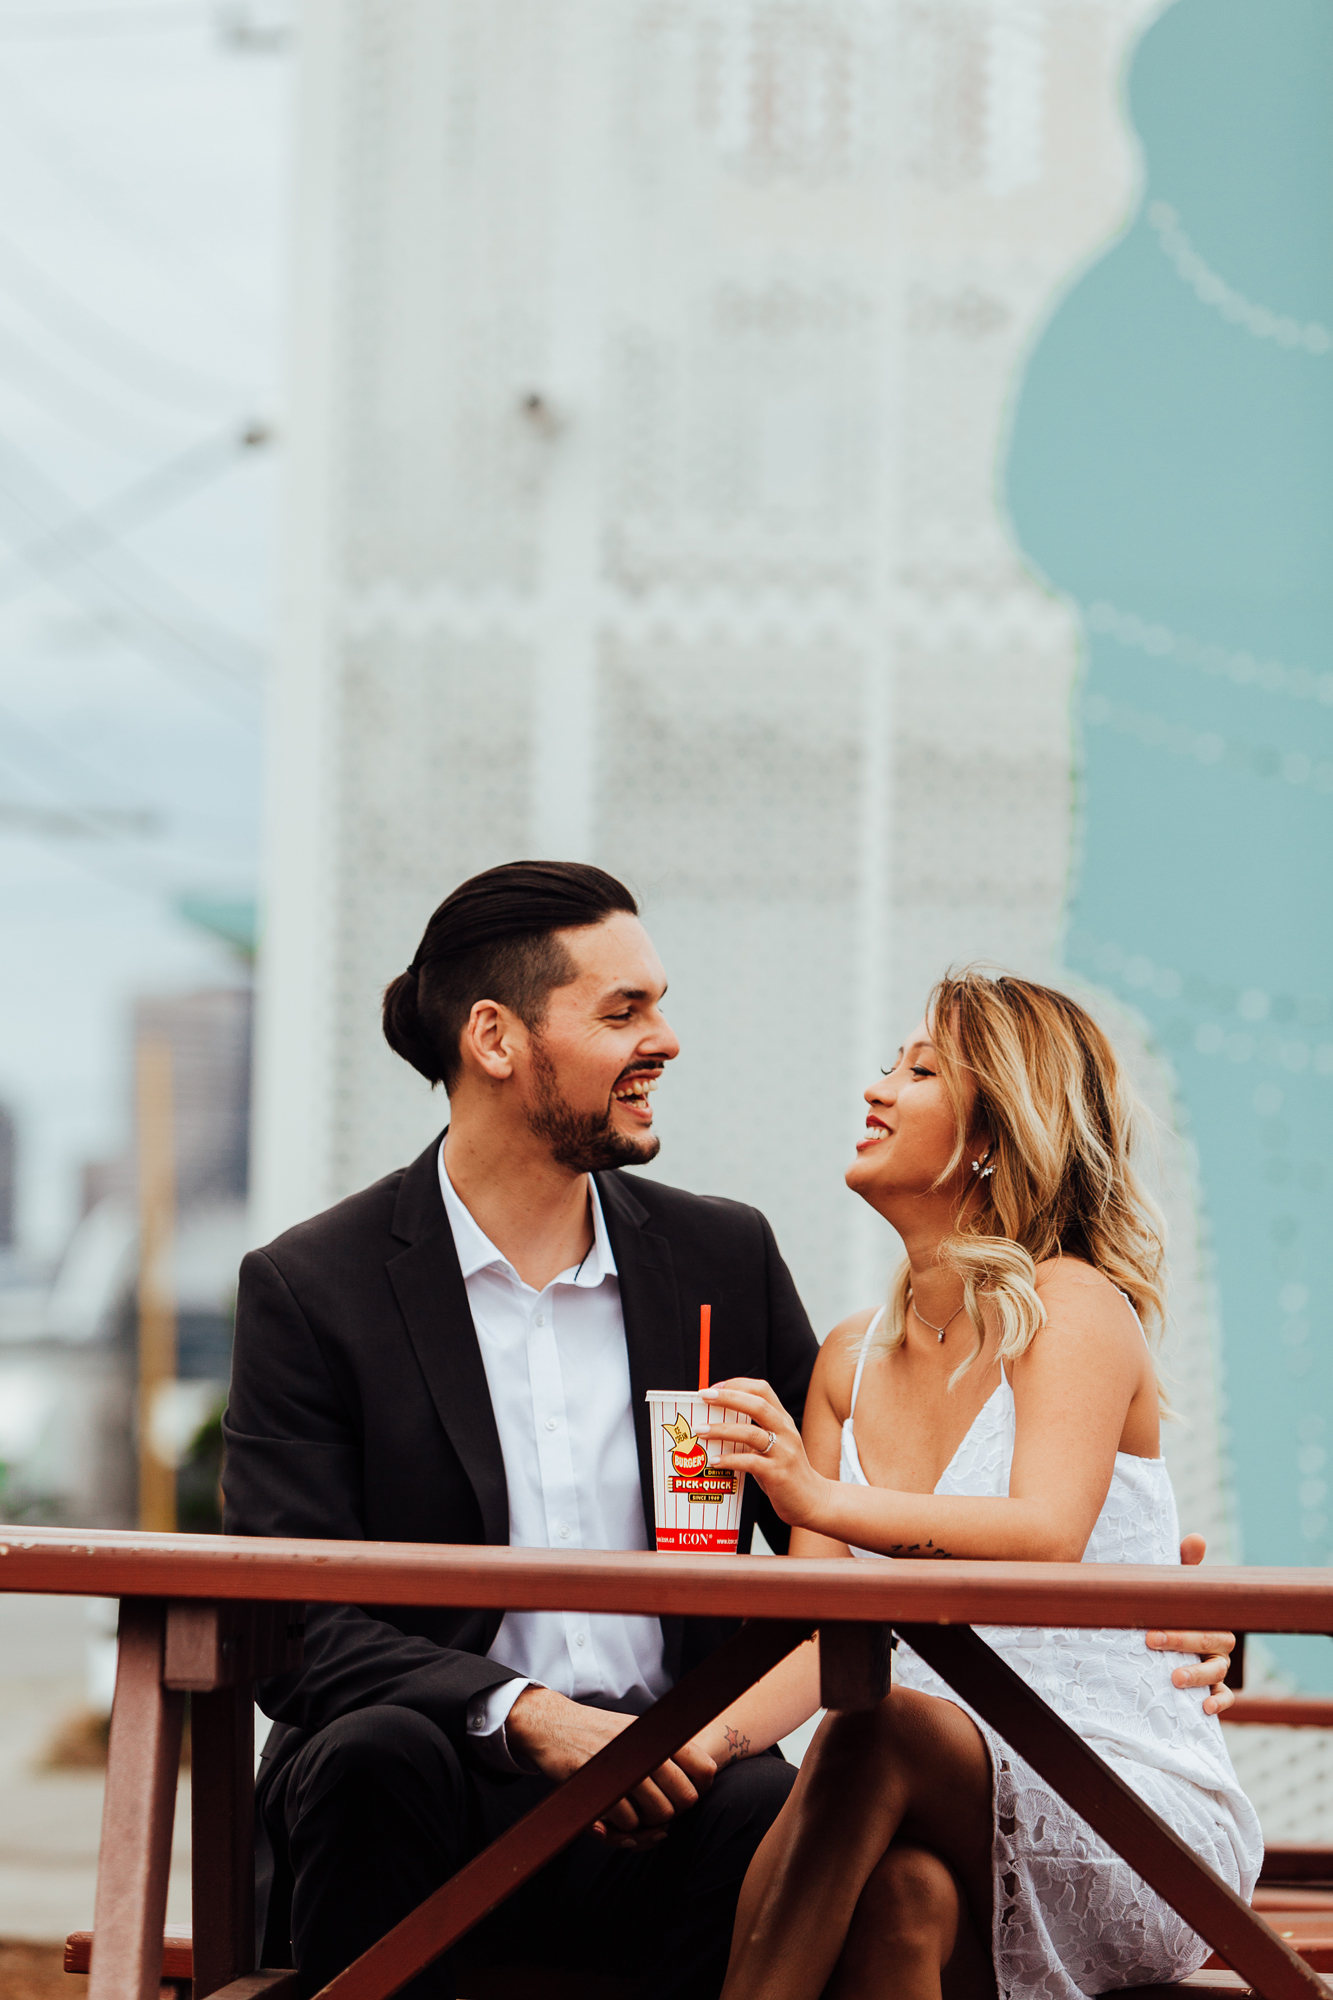 Seattle Rooftop Courthouse Wedding Photos by Krista Welch00022.jpg